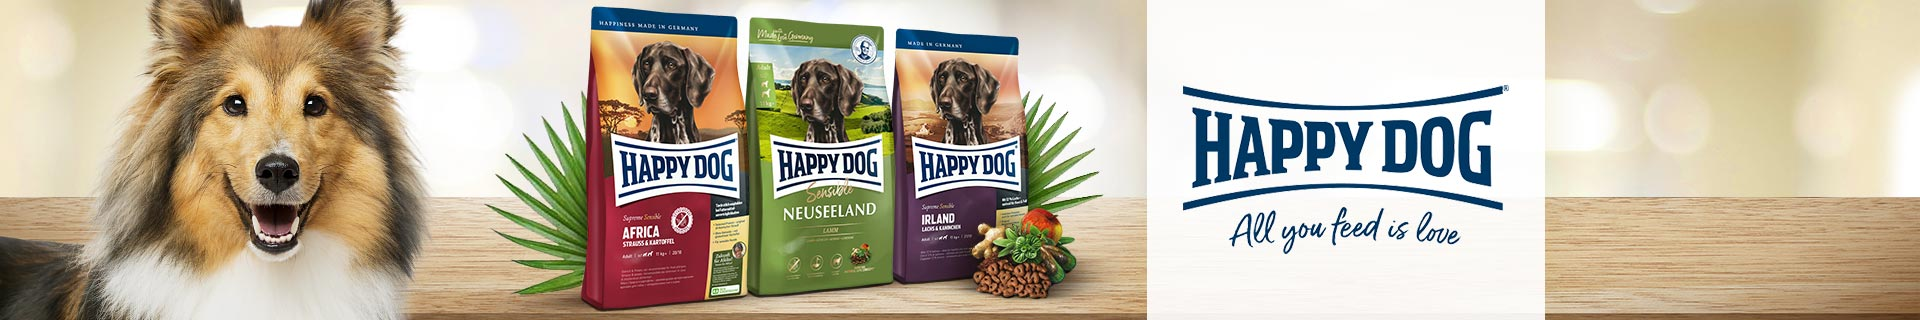 HappyDog Trockenfutter SupremeSensible